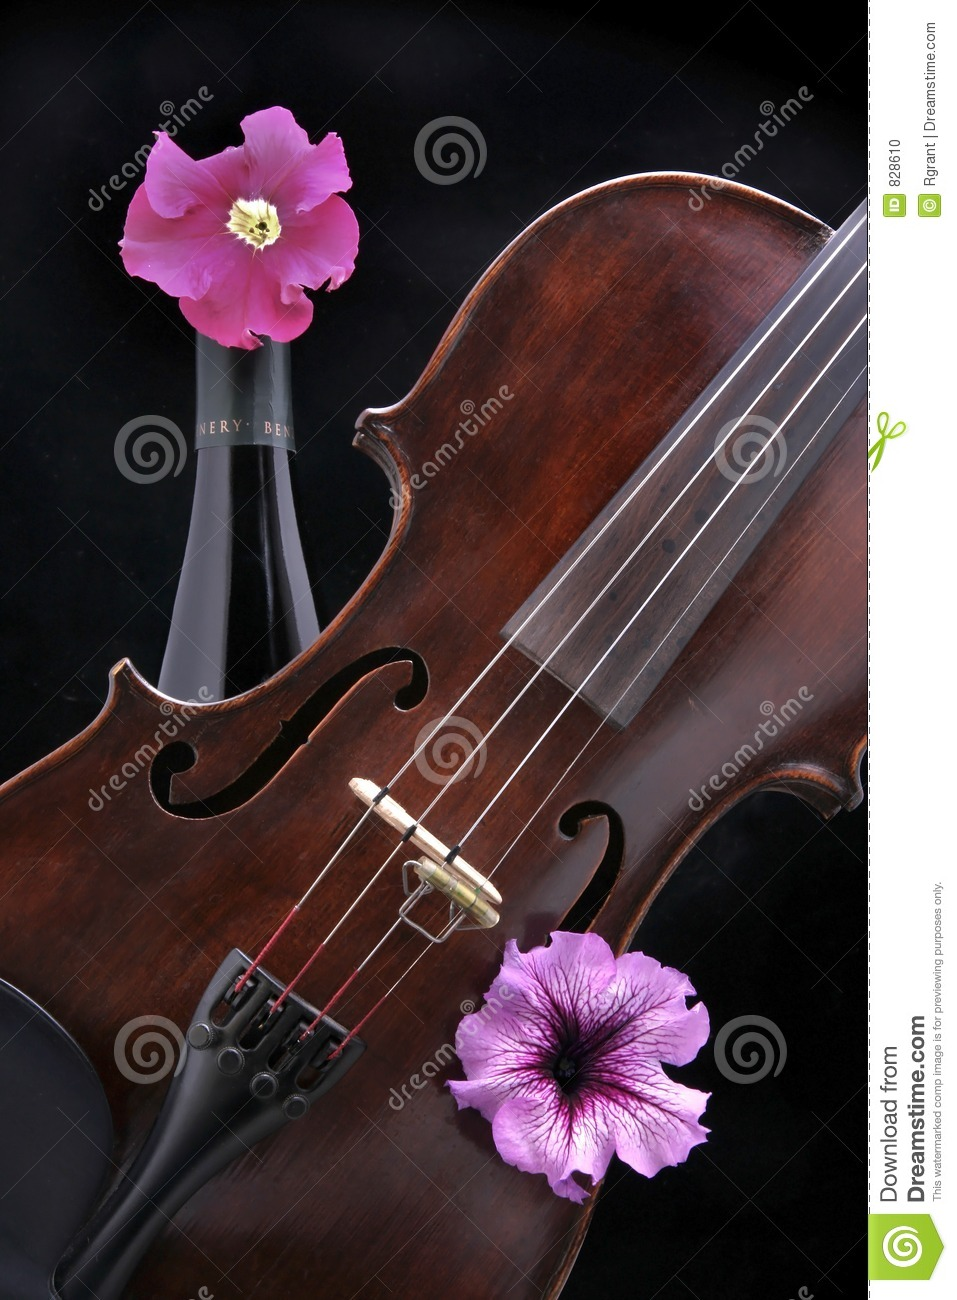 Violin with Wine bottle and Flowers